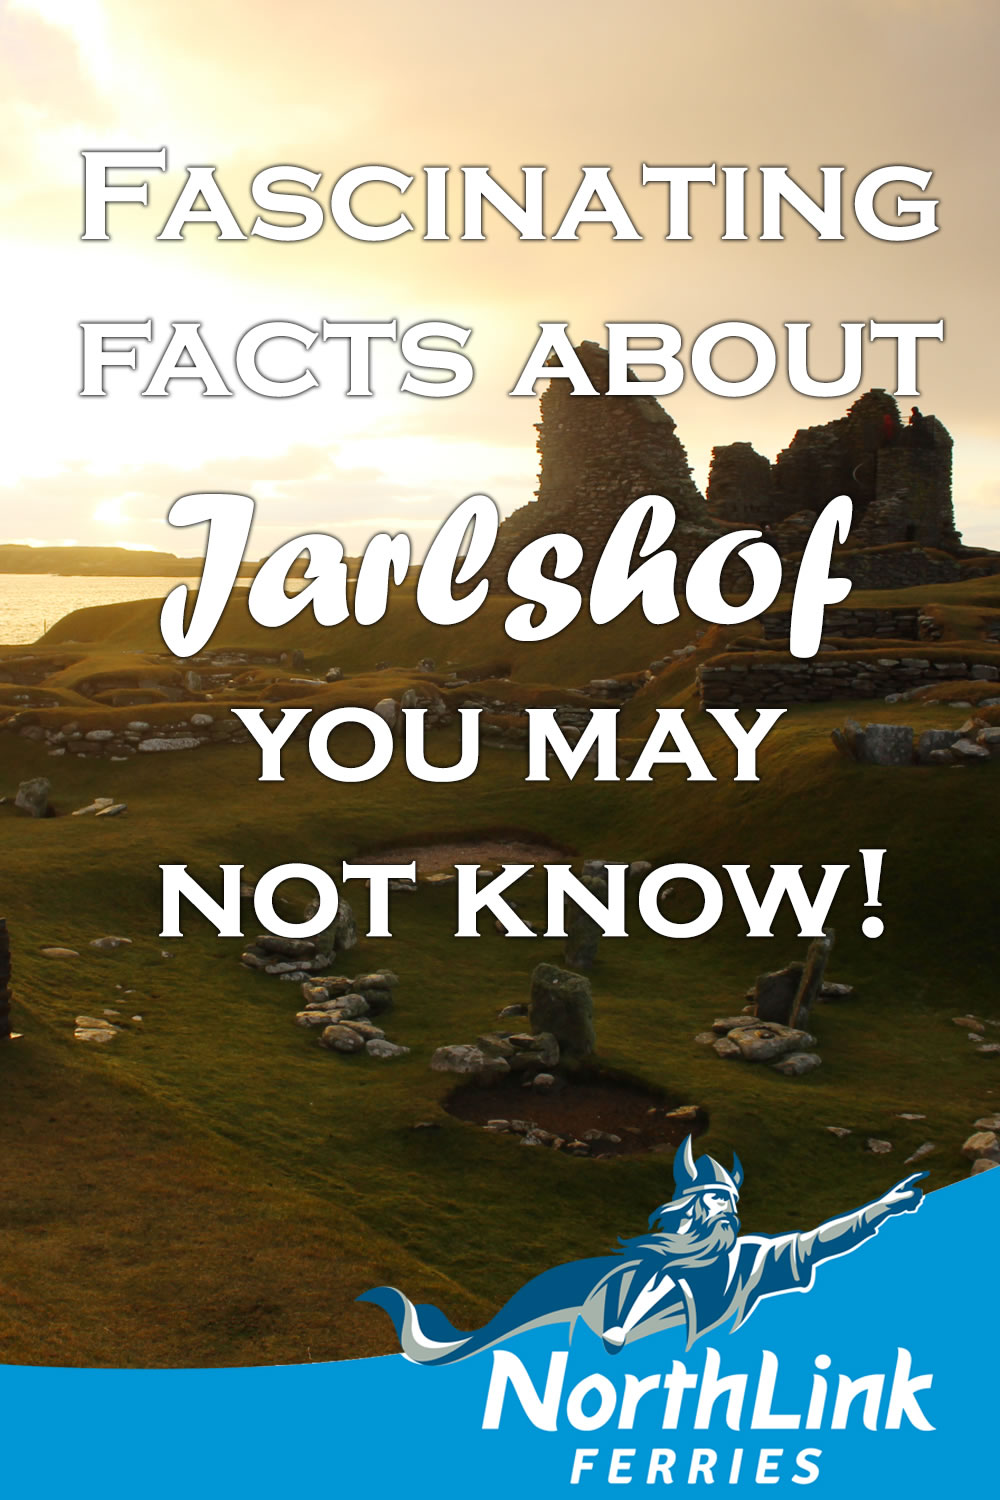 Fascinating facts about Jarlshof you may not know!